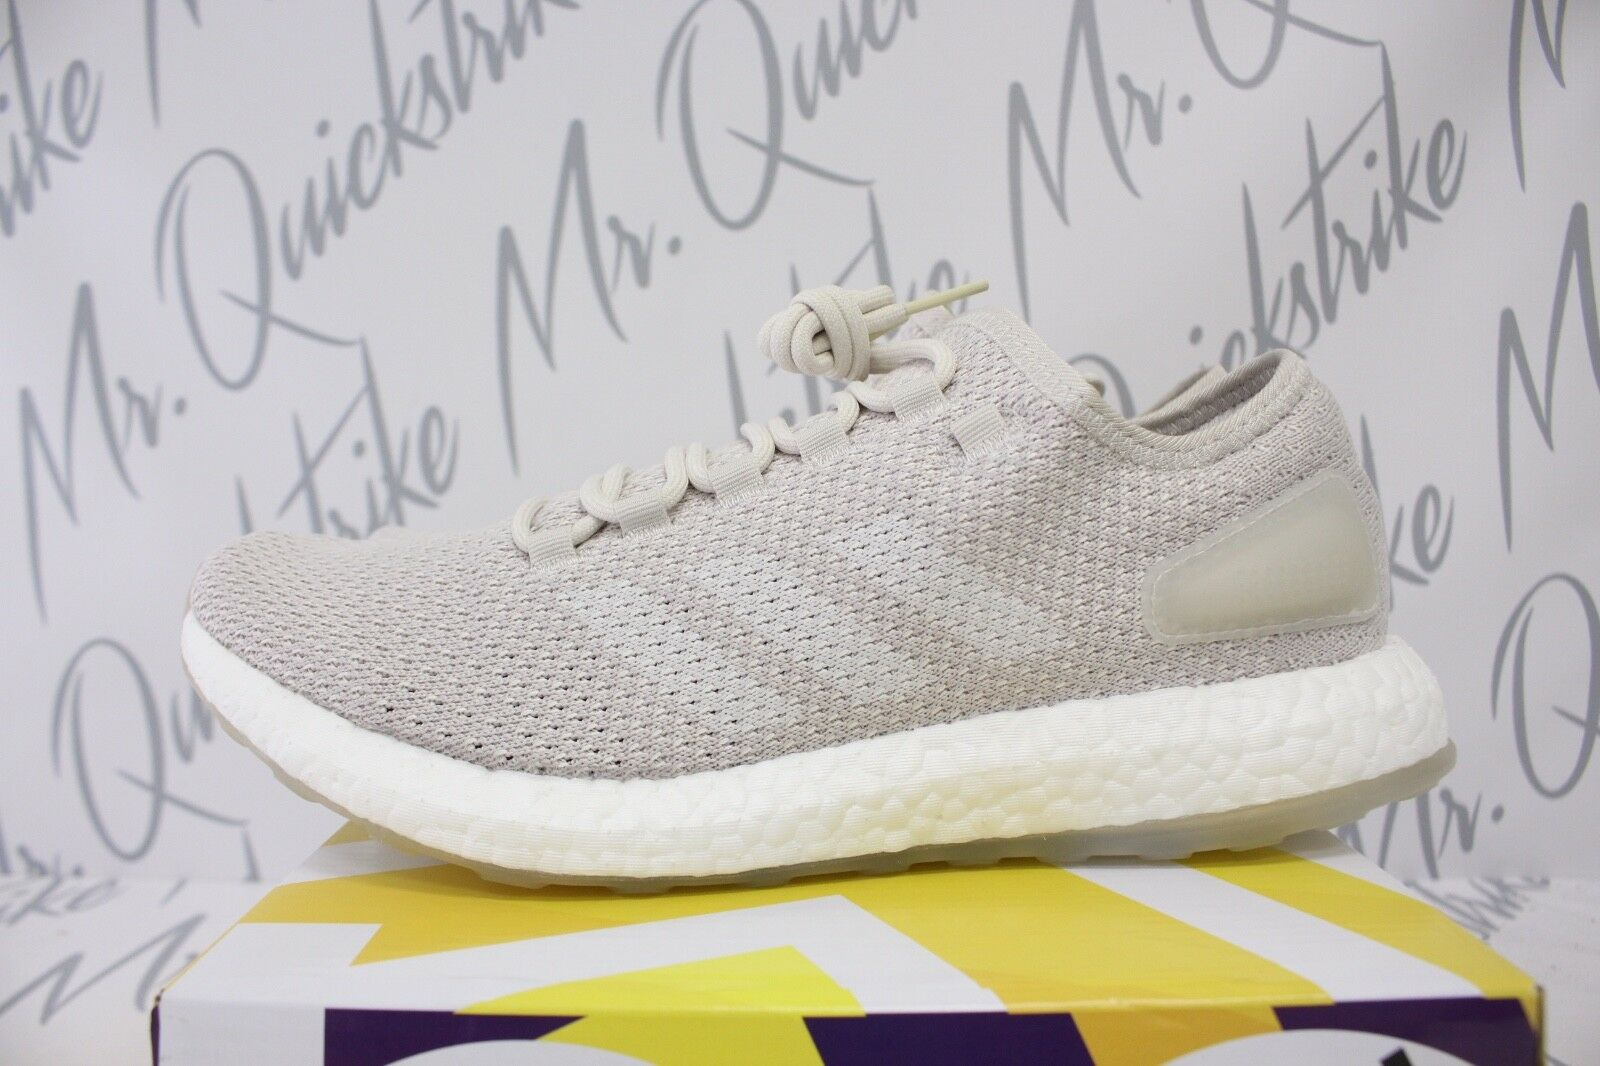 12405c3d7 ADIDAS PUREBOOST CLIMA SZ 13 CHALK PEARL TINT BY8895 WHITE ULTRABOOST  nauabi11-Athletic Shoes